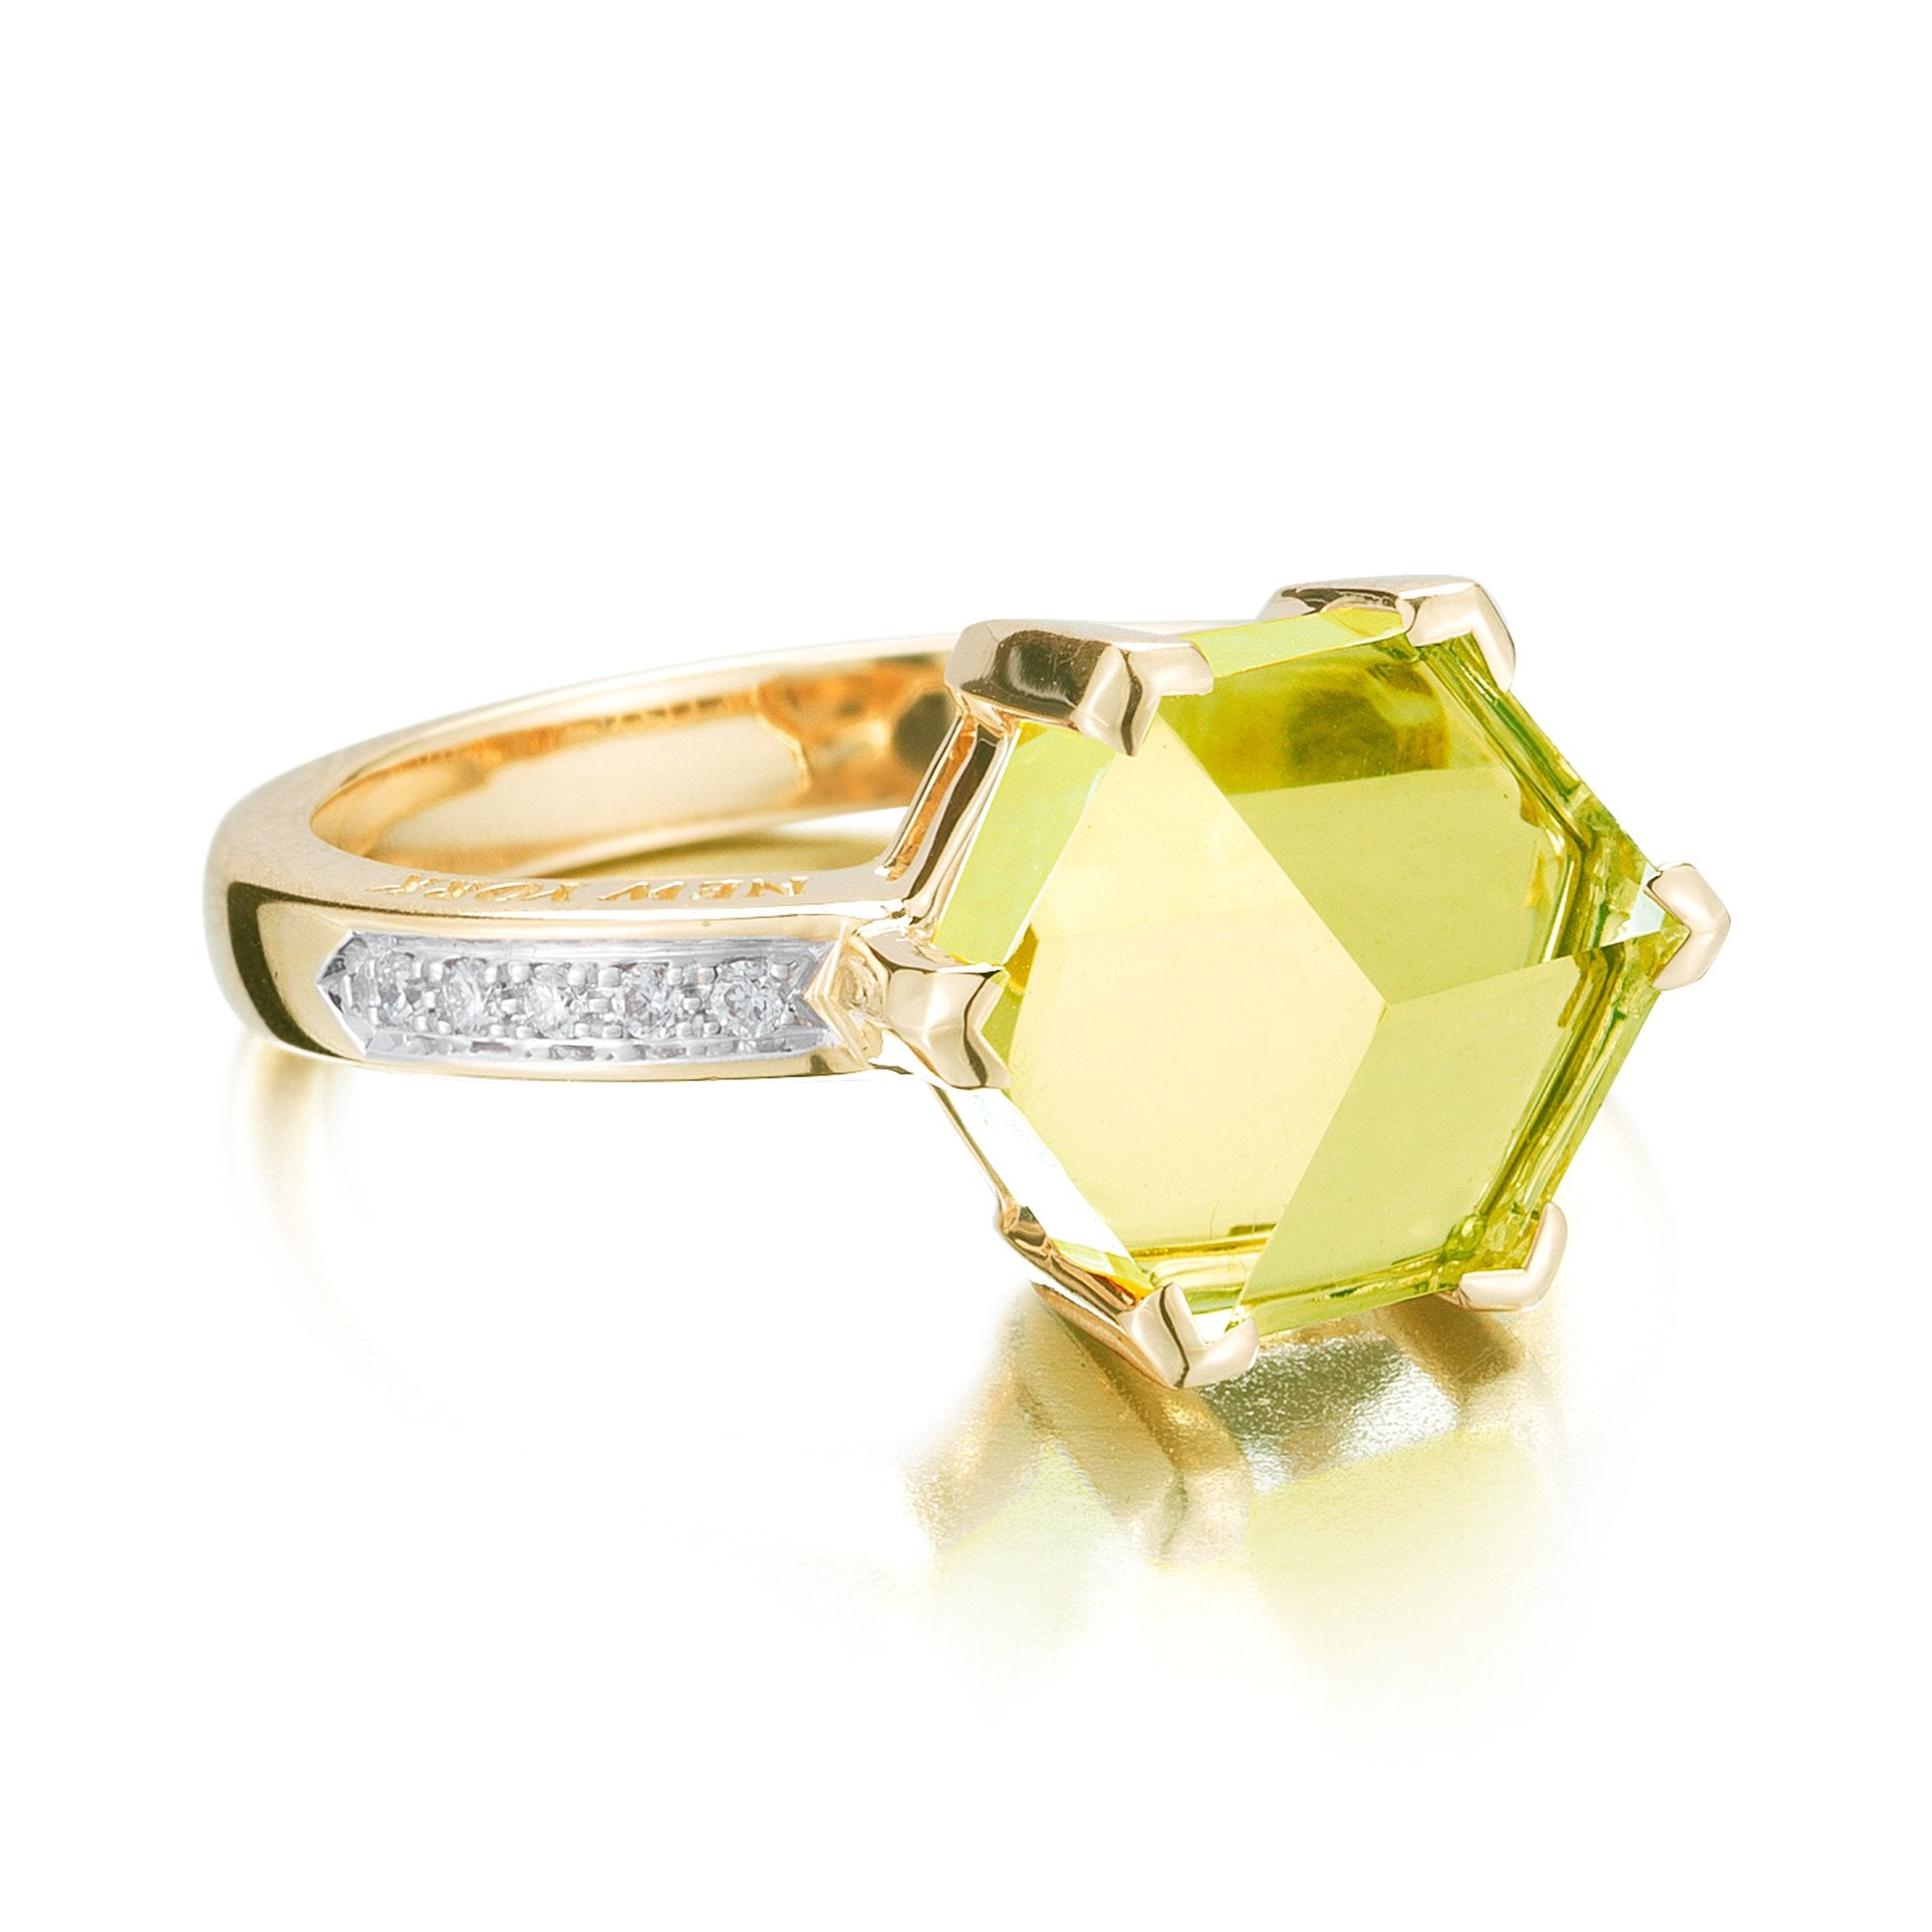 Lemon Citrine 'Brillante® Valentina' Ring, Petite